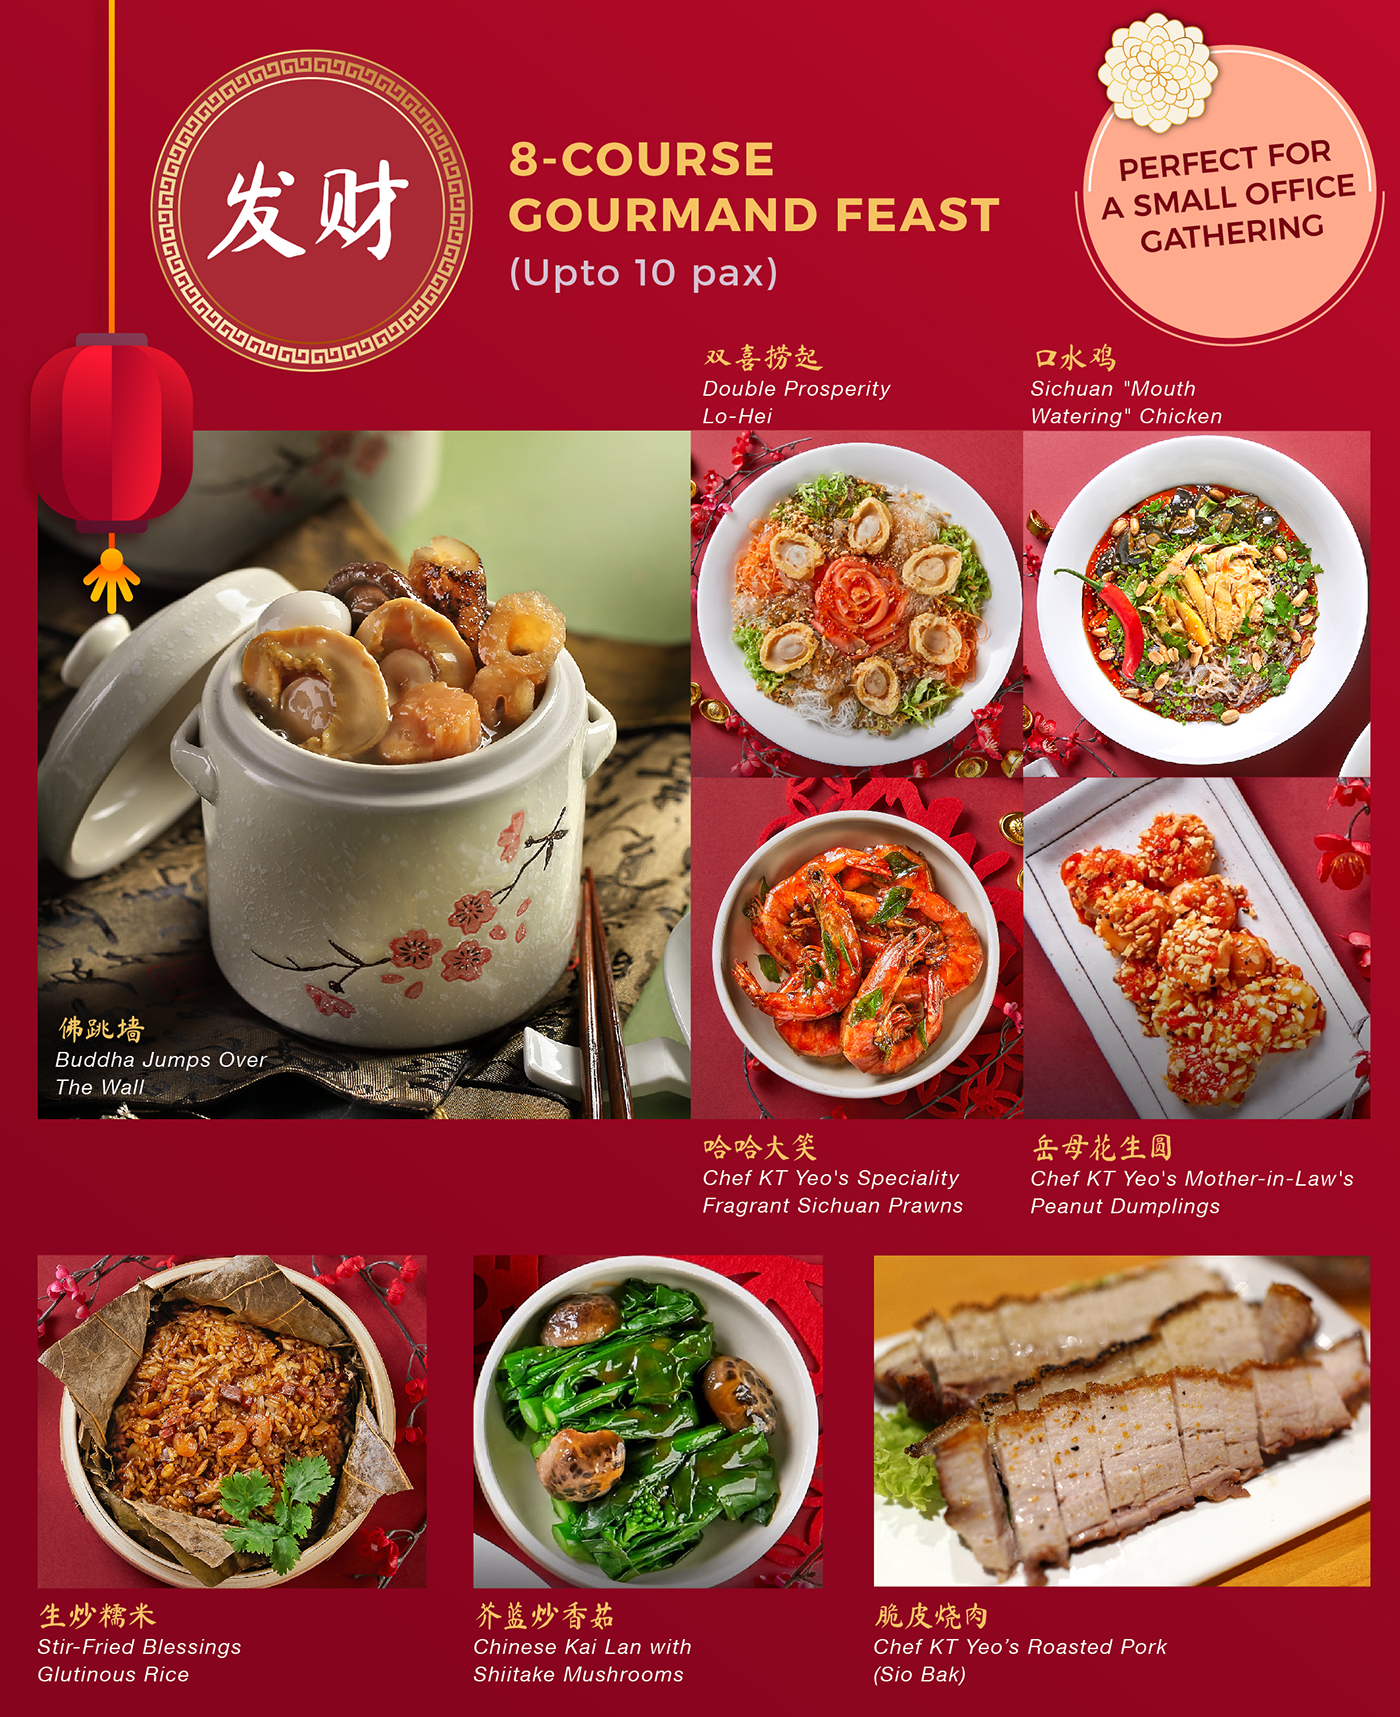 Chinese New Year 2021 menu of 8 course gourmand feast featuring lo hei, sichuan chicken and prawns, peanut dumplings and more